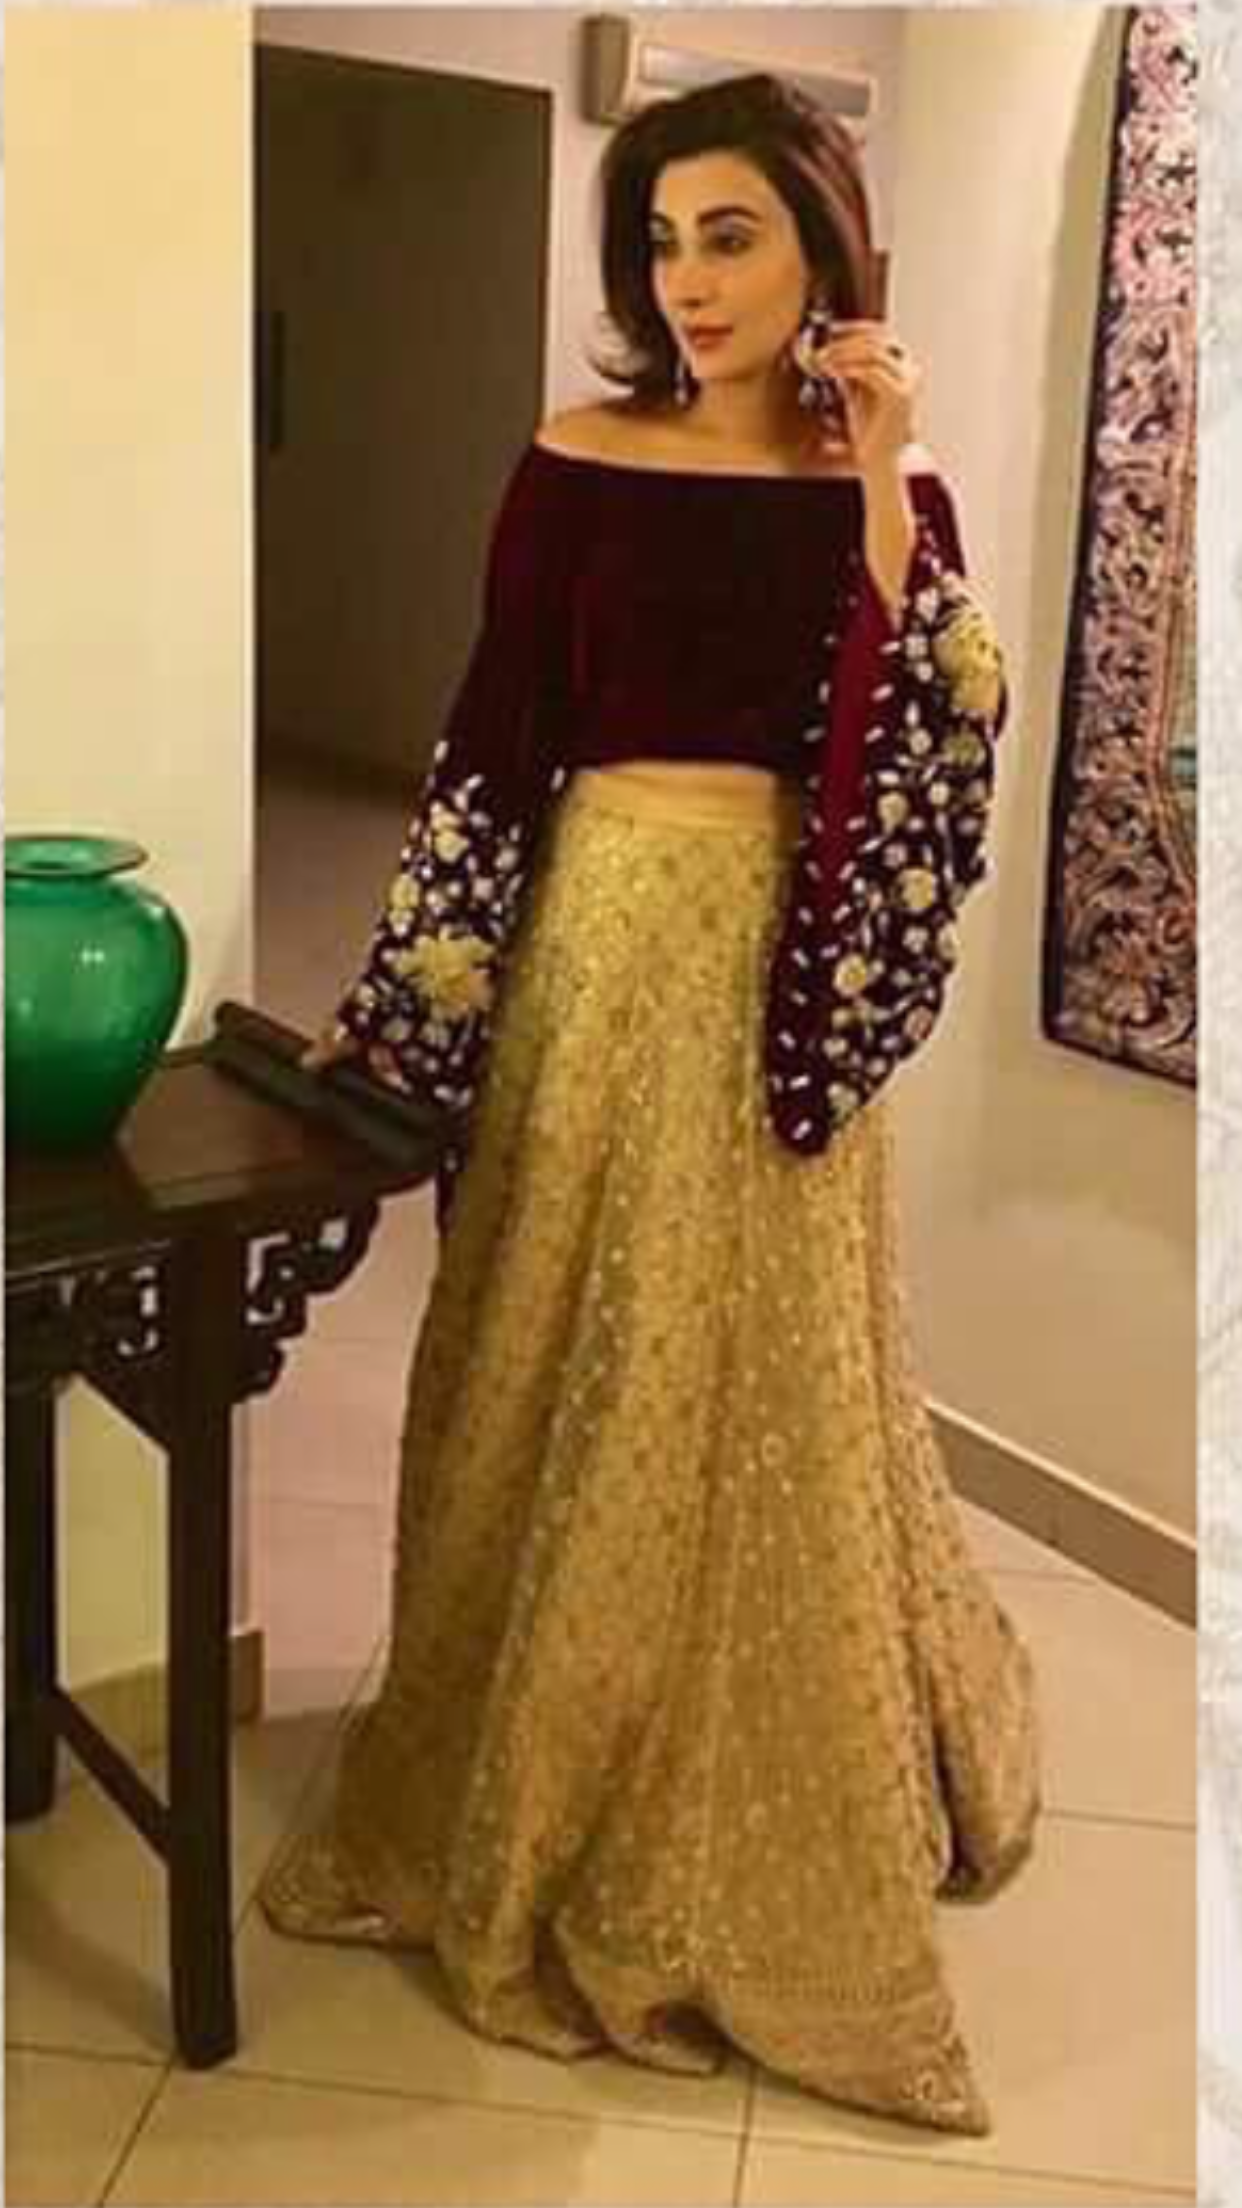 Evening dresses for weddings images in pakistan